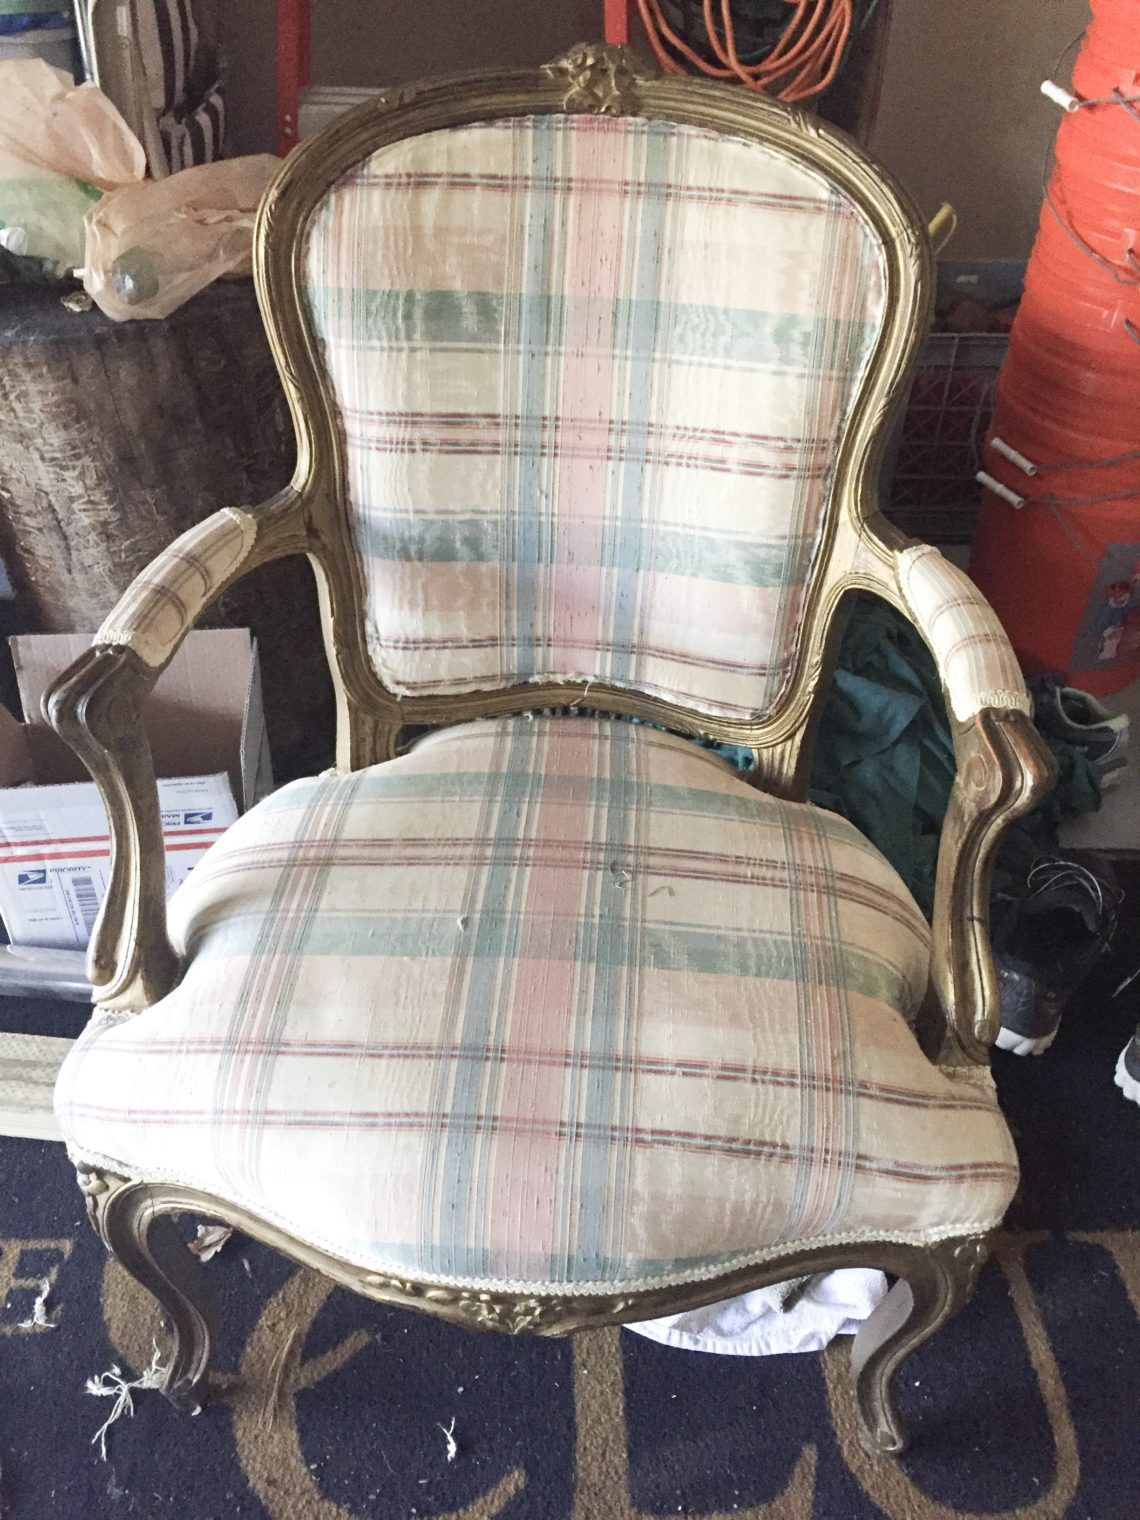 How to Stain, Paint and Reupholster a Chair Refinished